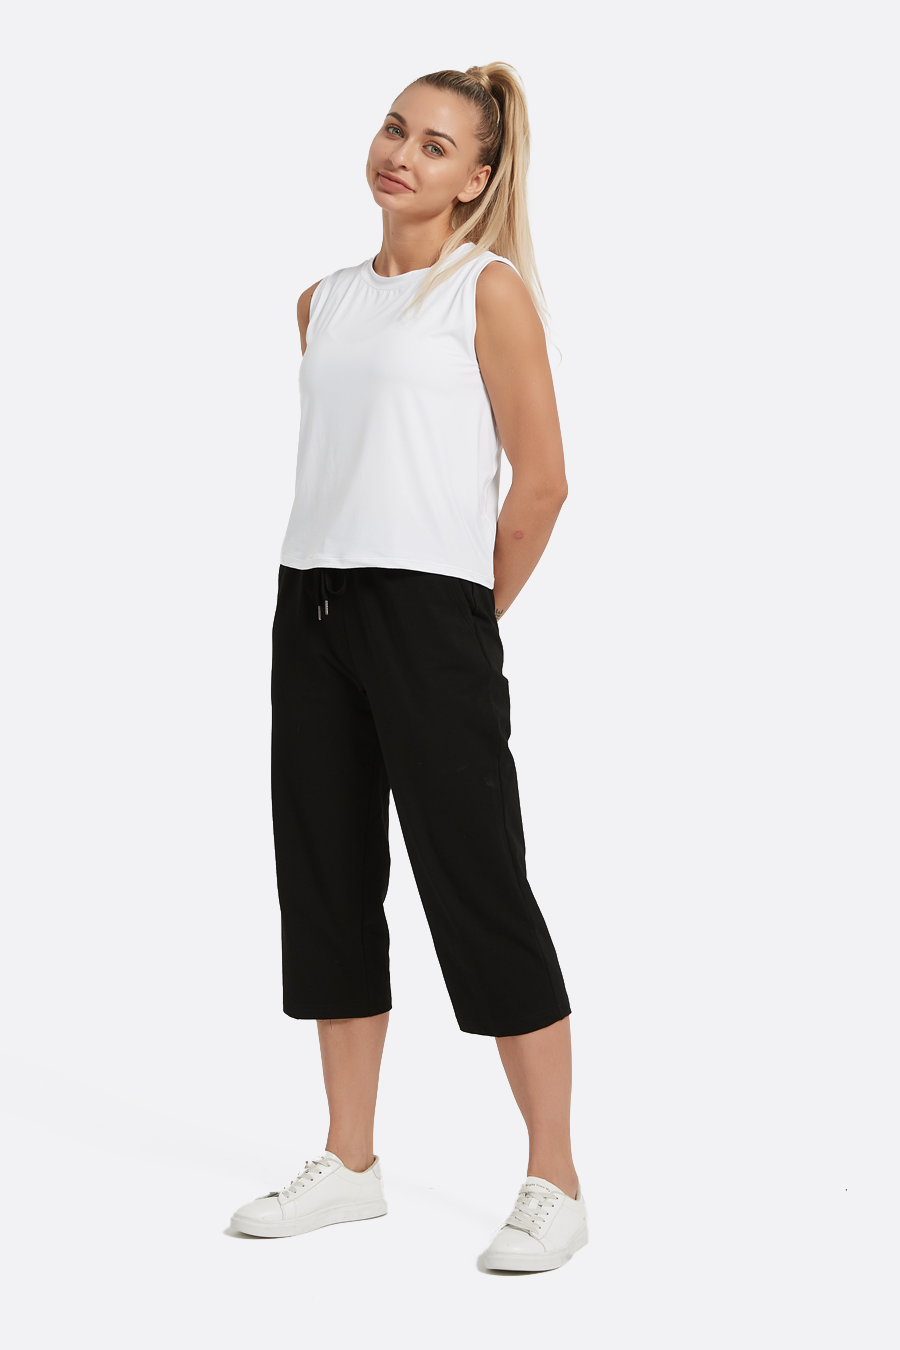 Women's Cotton Capri Pants Crop Sweatpants with Pockets